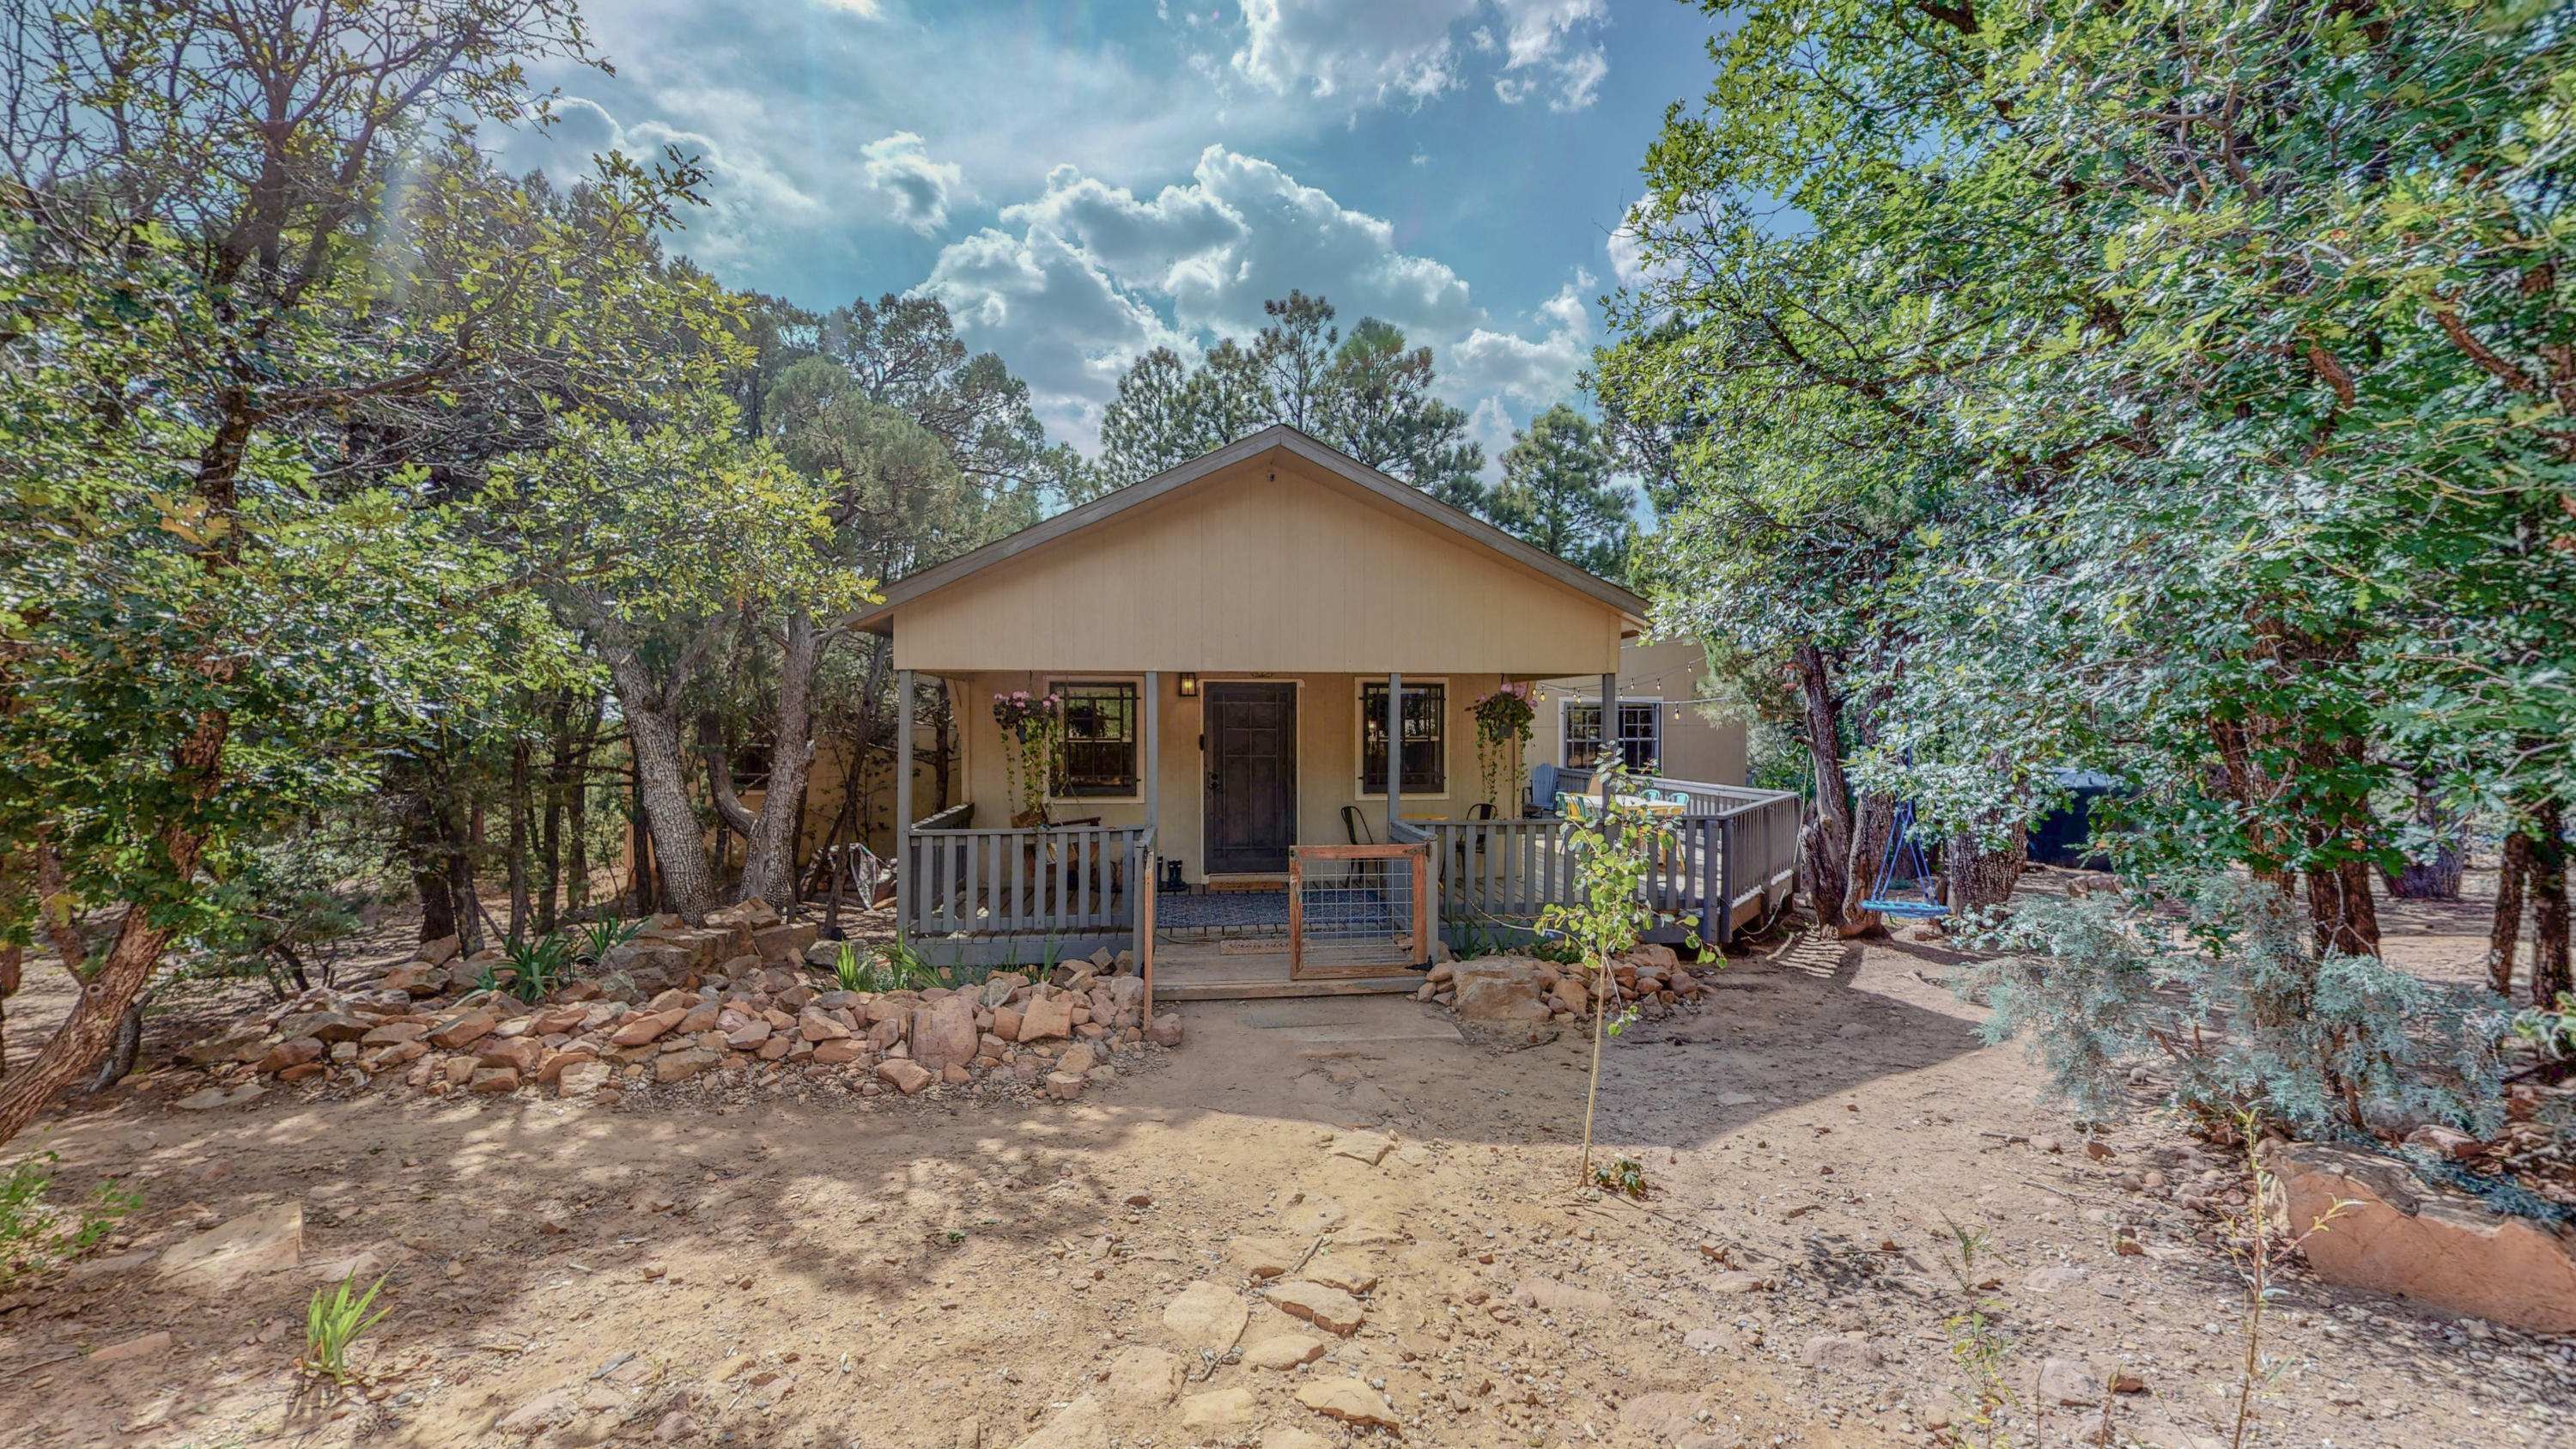 Welcome to this immaculately kept dwelling, nestled in peaceful Tijeras. The interior features soaring ceilings, vast walk-in closets, an excellent floorplan, open concept kitchen, and views of the forest from every window. Outside you'll find an entertainer's dream deck, perfect for dinners and parties, a charming porch swing to curl up on with a book and a cup of coffee, a large fire pit nestled into a clearing for gathering with friends, tons of wildlife and pockets of flower gardens scattered about the property. Minutes from hiking and camping. Gorgeous commute through picturesque canyons. Adjacent cabin property at 3 Dove  ALSO for sale by same owners. Live in the main house and rent out the cabin or use as a guest house! Great Airbnb Potential for Balloon Fiesta!